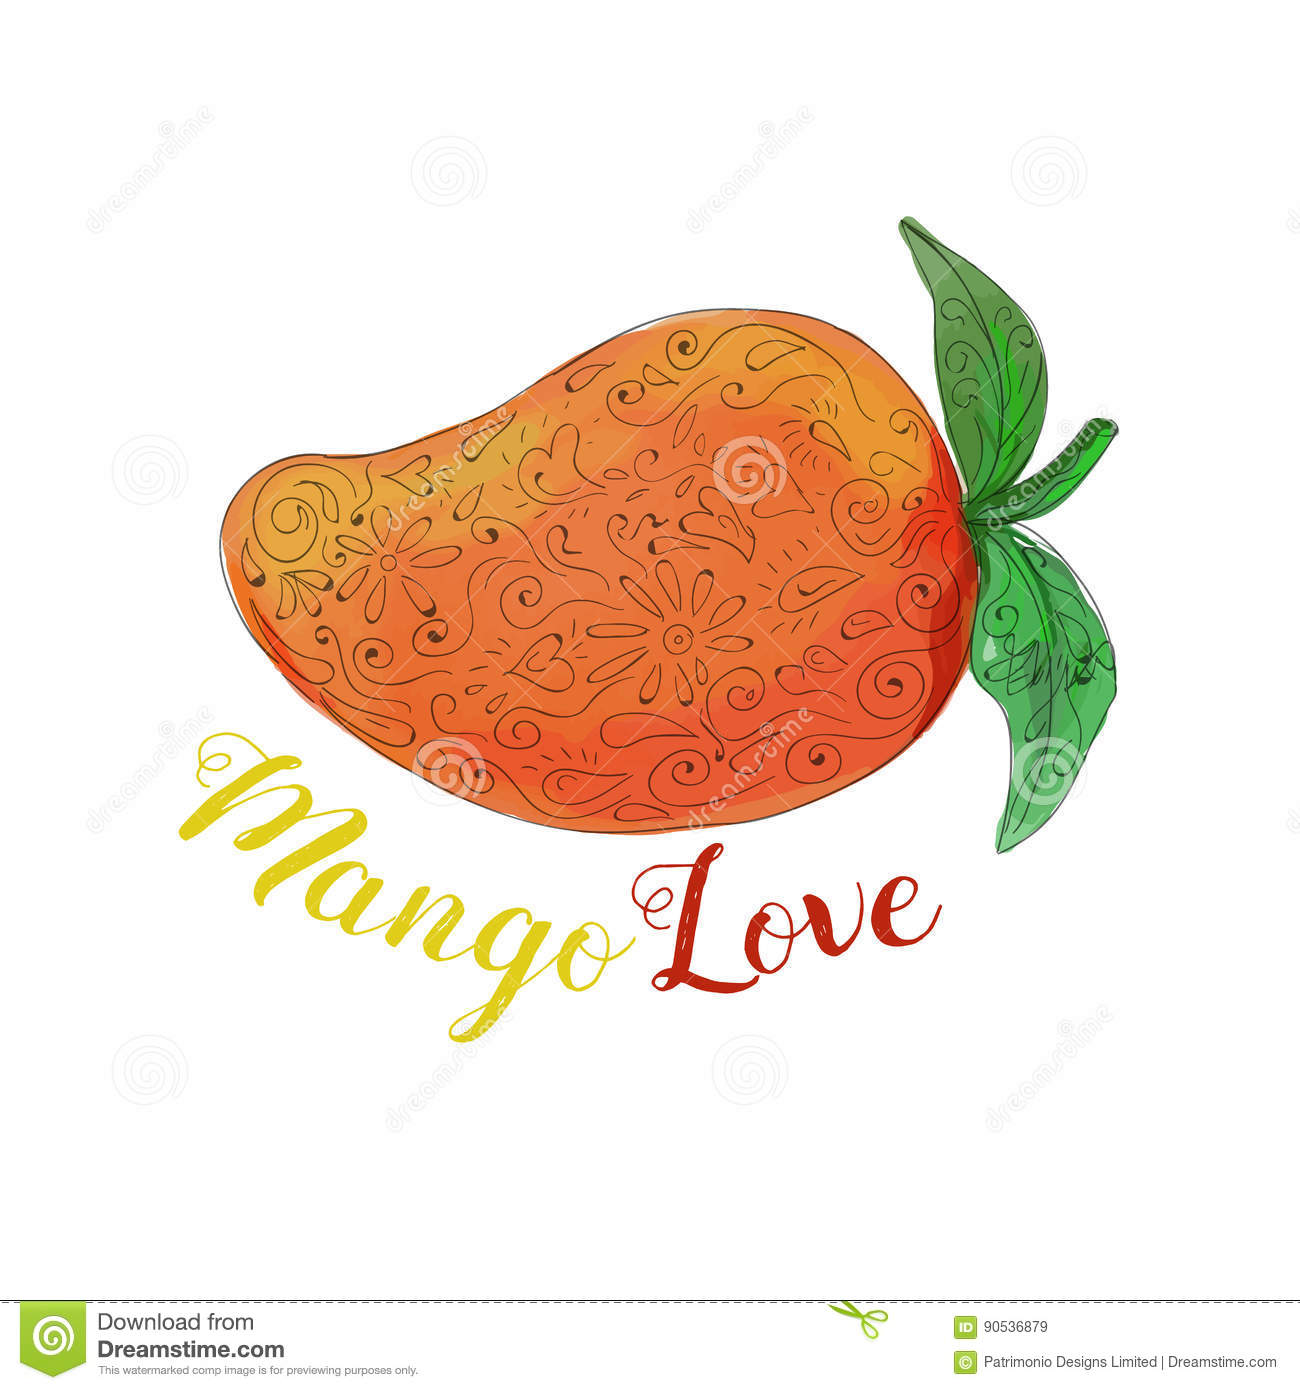 Mango Love Fruit Watercolor Mandala Royalty Free Vector Download